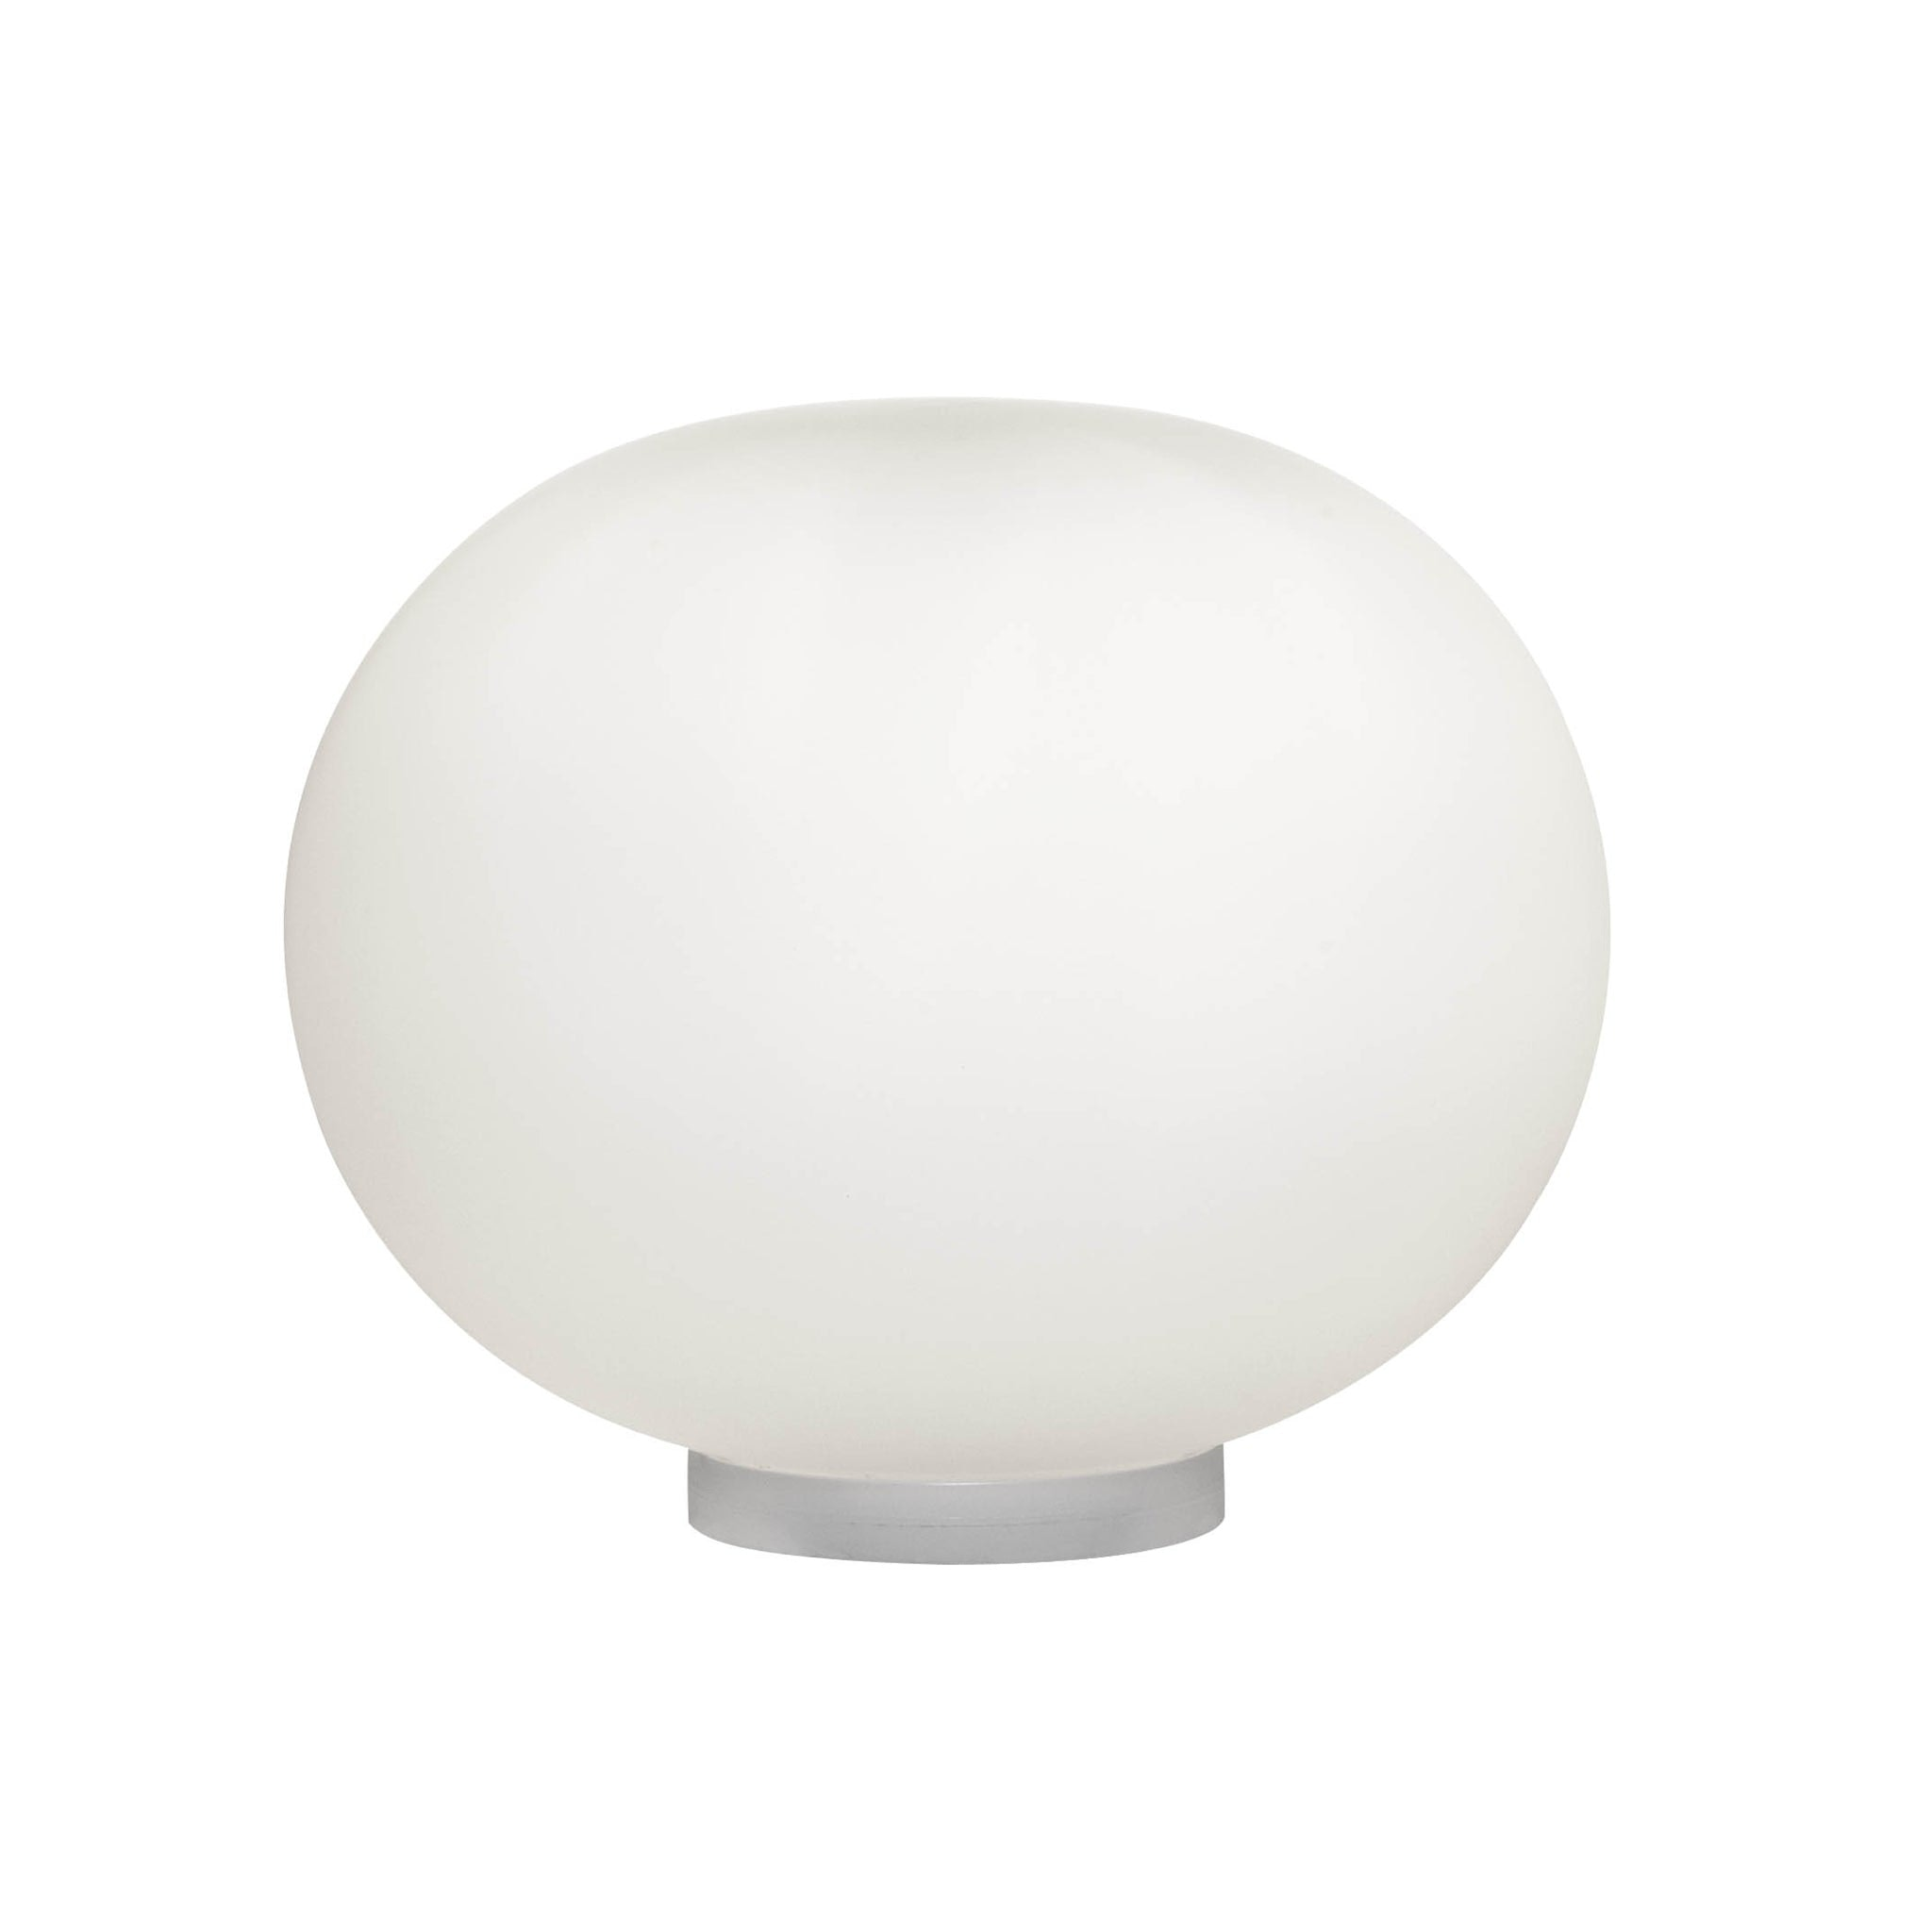 Glo Ball Basic Zero by Flos